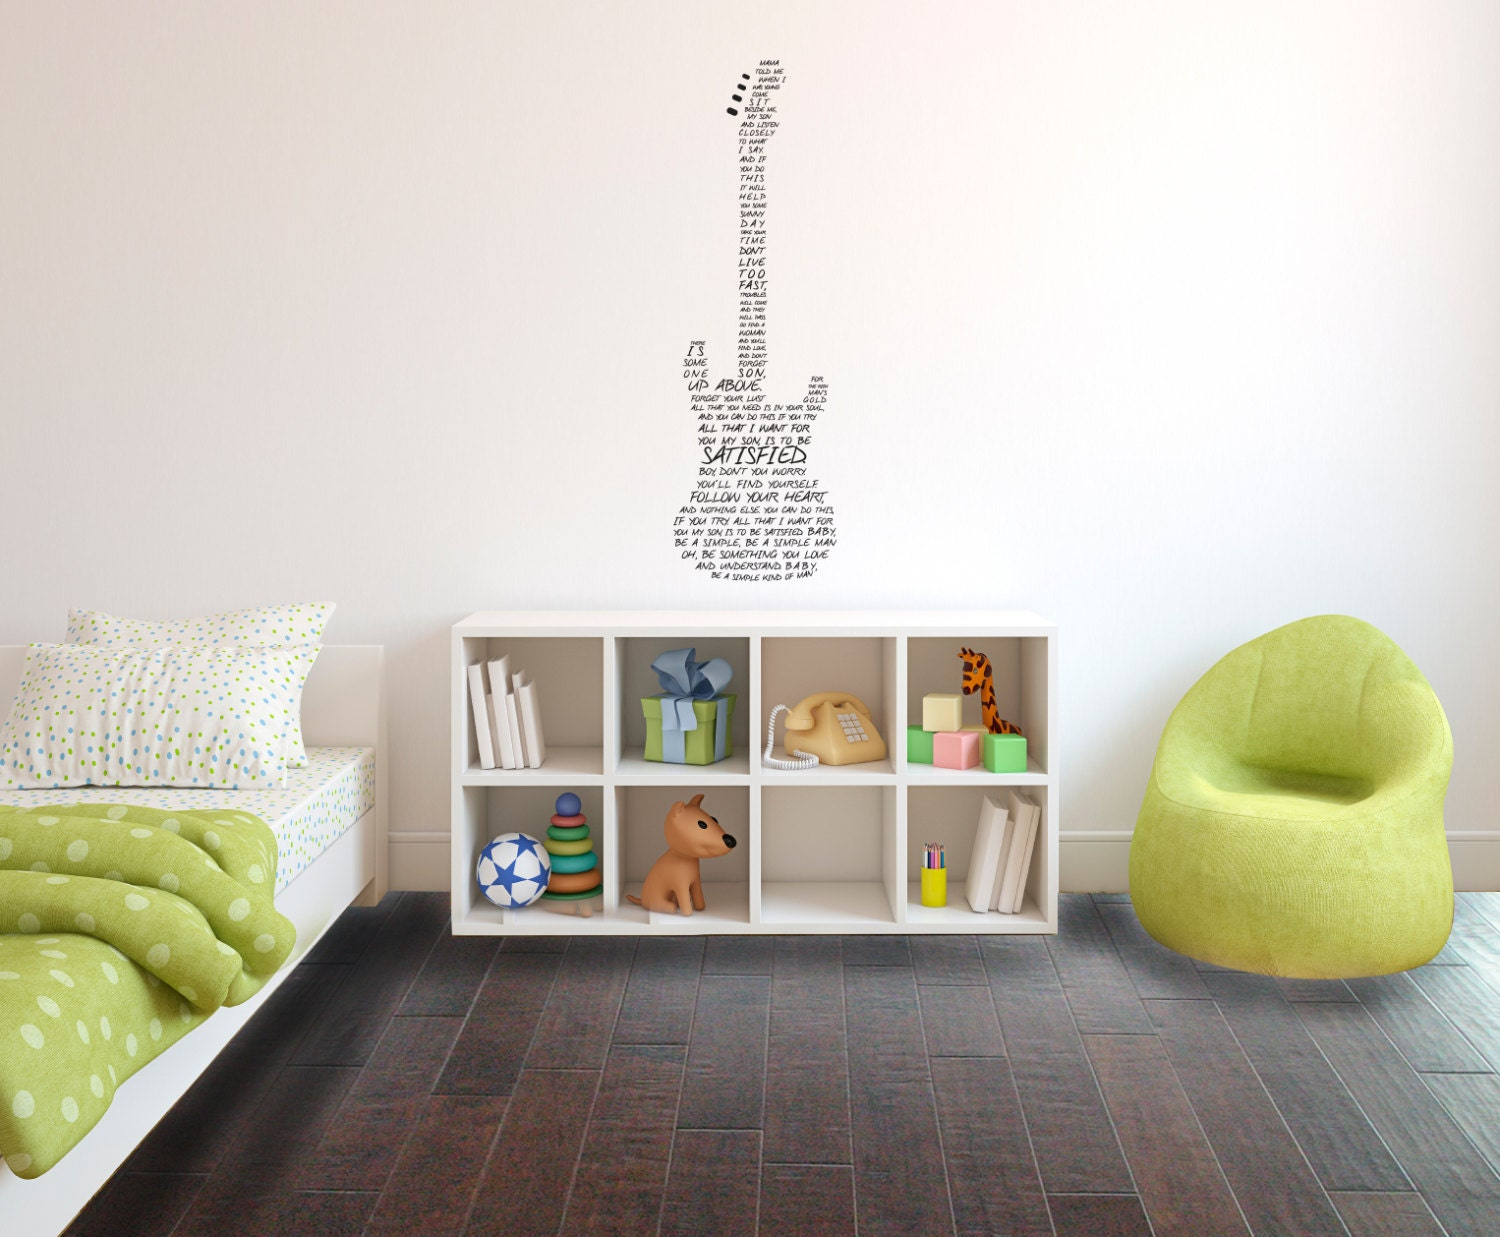 Simple Man Lyrics In Guitar Wall Decal Custom Vinyl Art - Custom vinyl decals for guitars